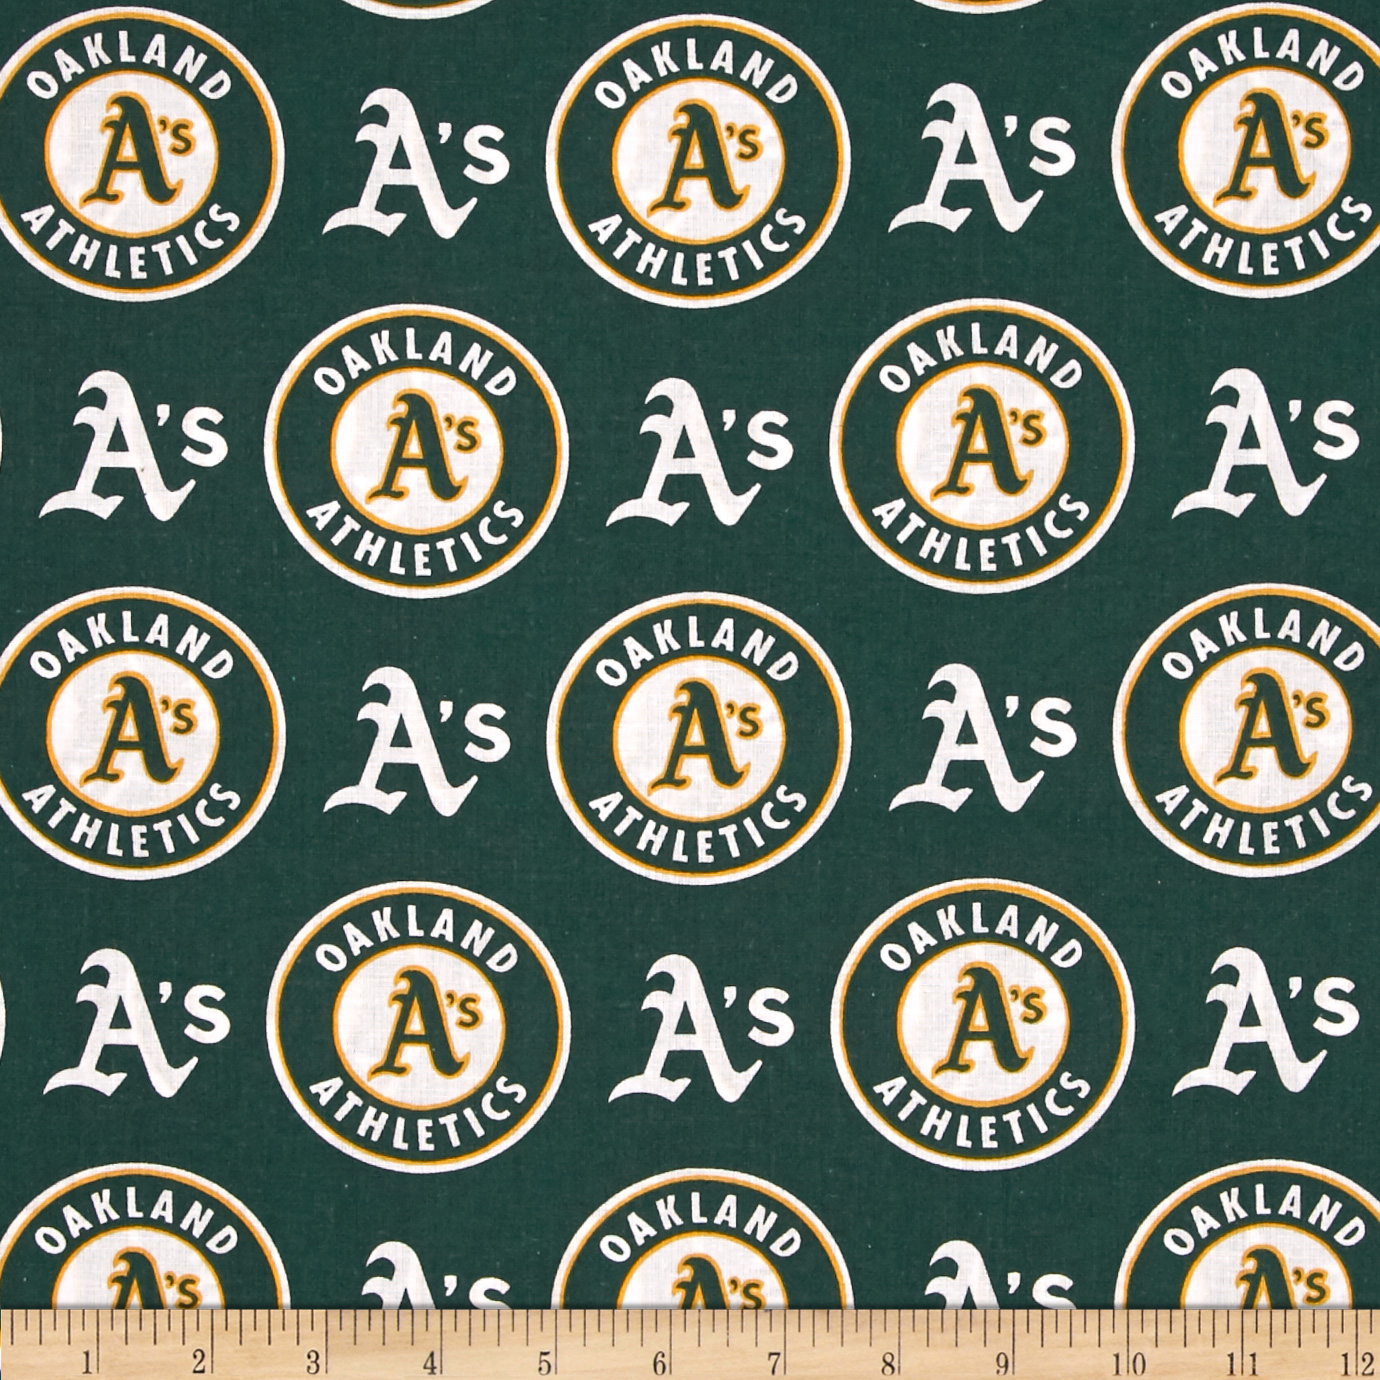 MLB Cotton Broadcloth Oakland Athletics Green/White Fabric by Fabric Traditions in USA